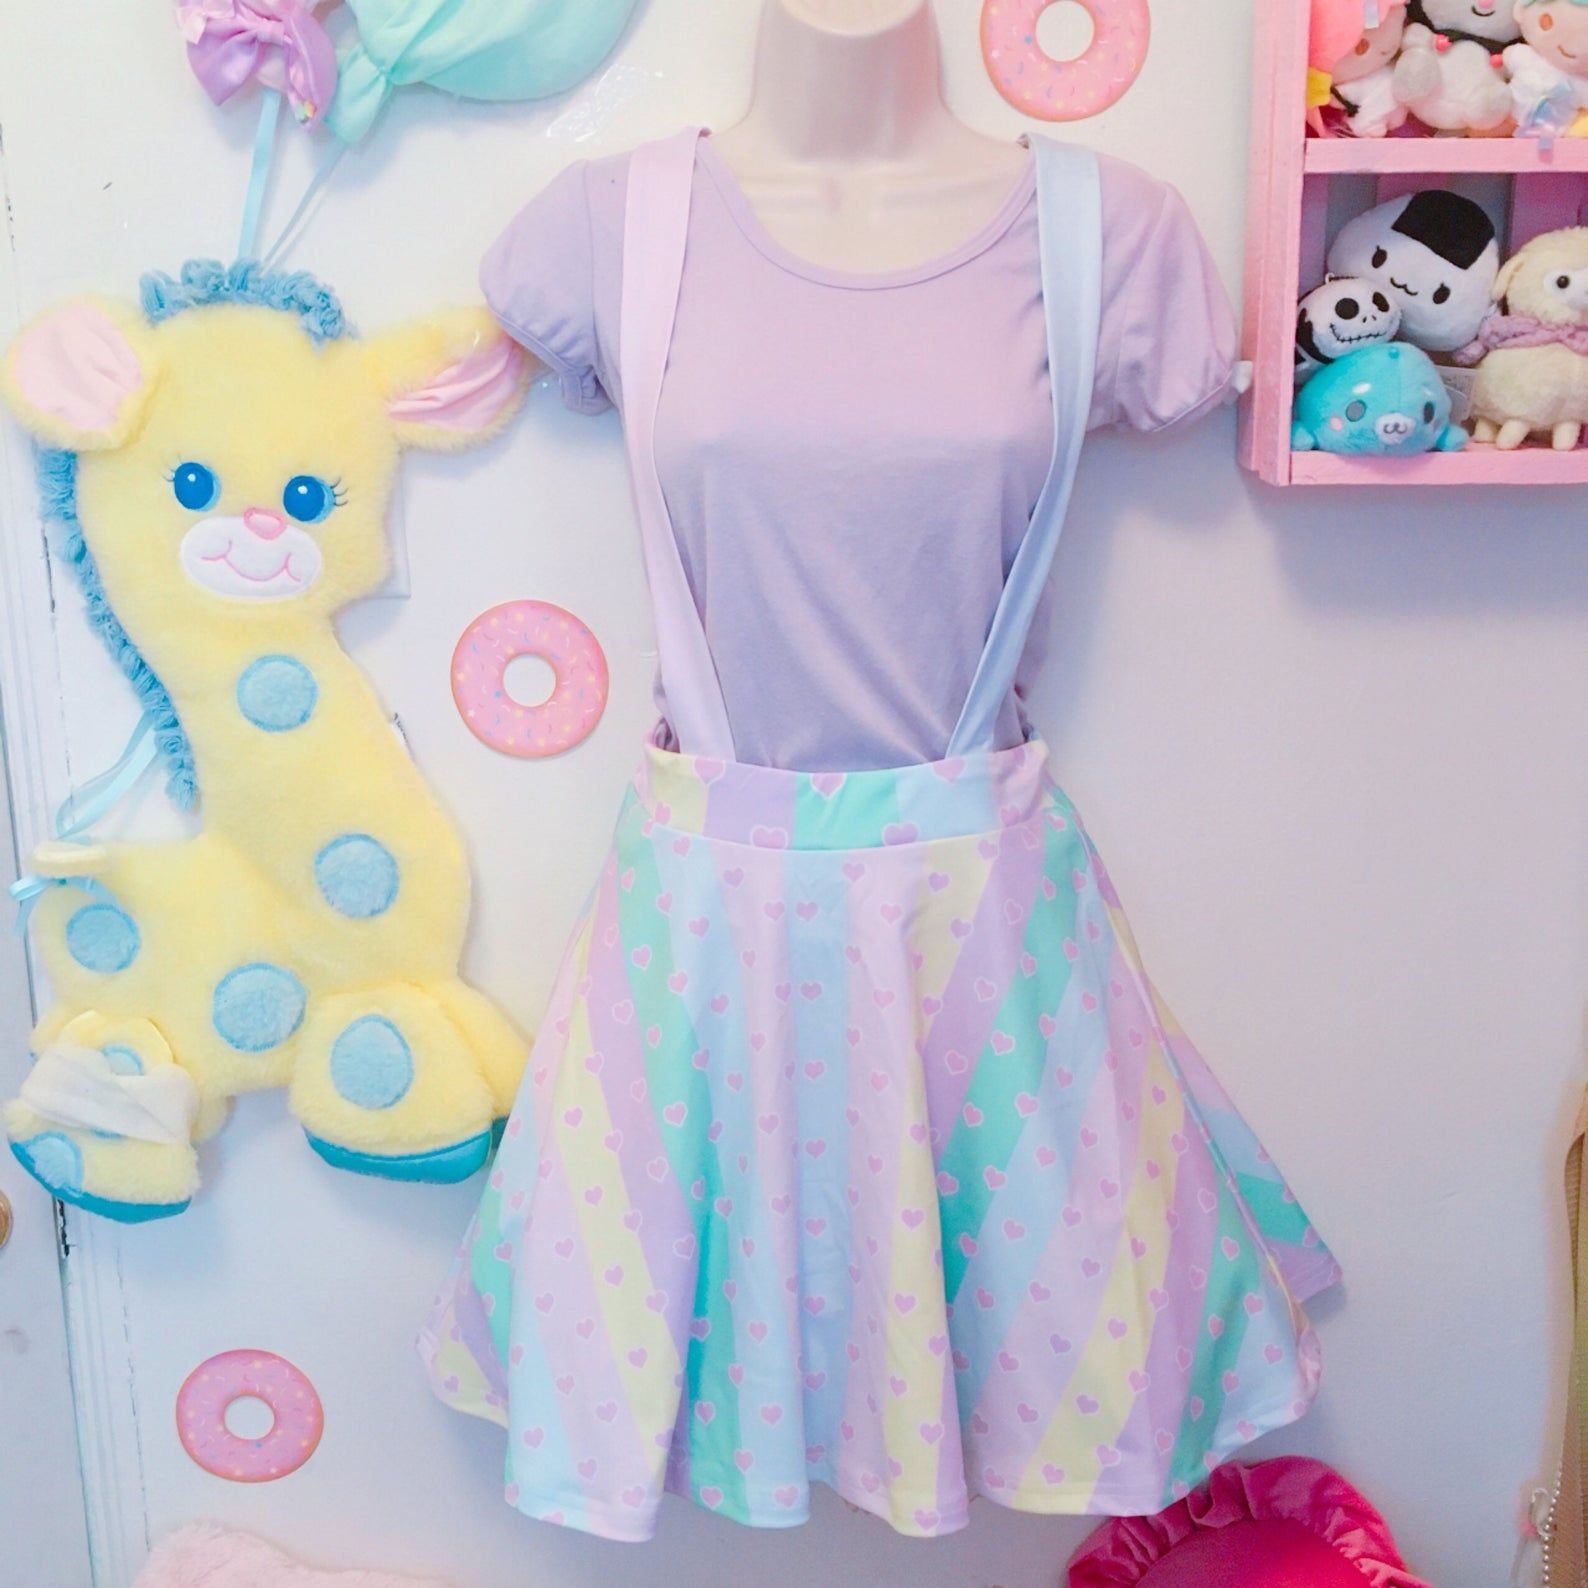 Pastel Rainbow Stripe Heart Yume Kawaii Suspender Skirt, Pastel Skirt, Fairy Kei Skirt, Kawaii Skirt